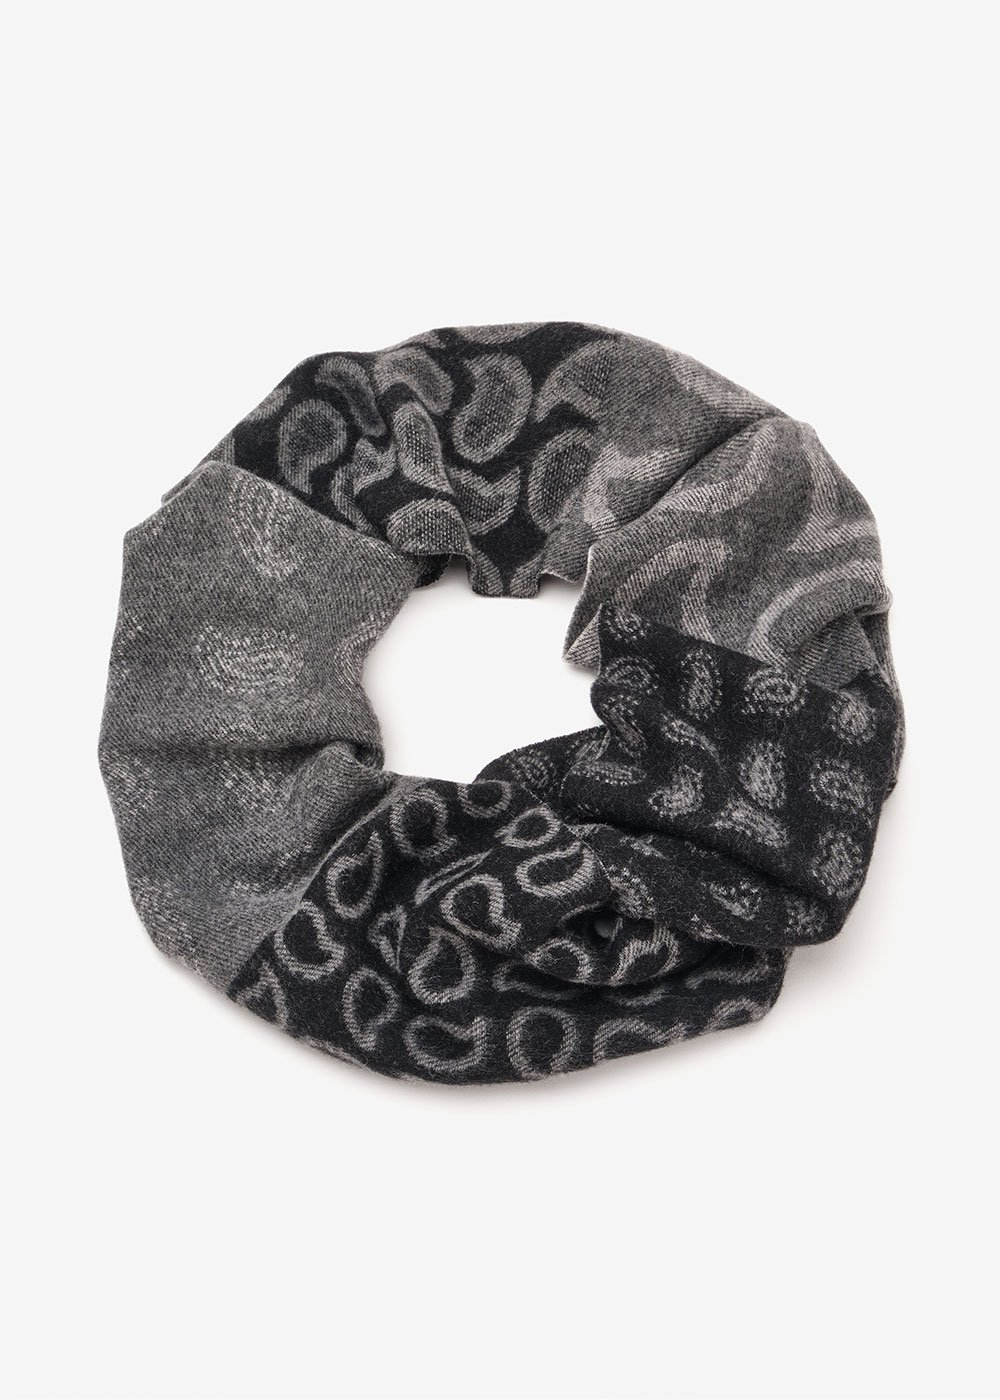 Stacee patterned scarf - Black  / Grey Multi - Woman